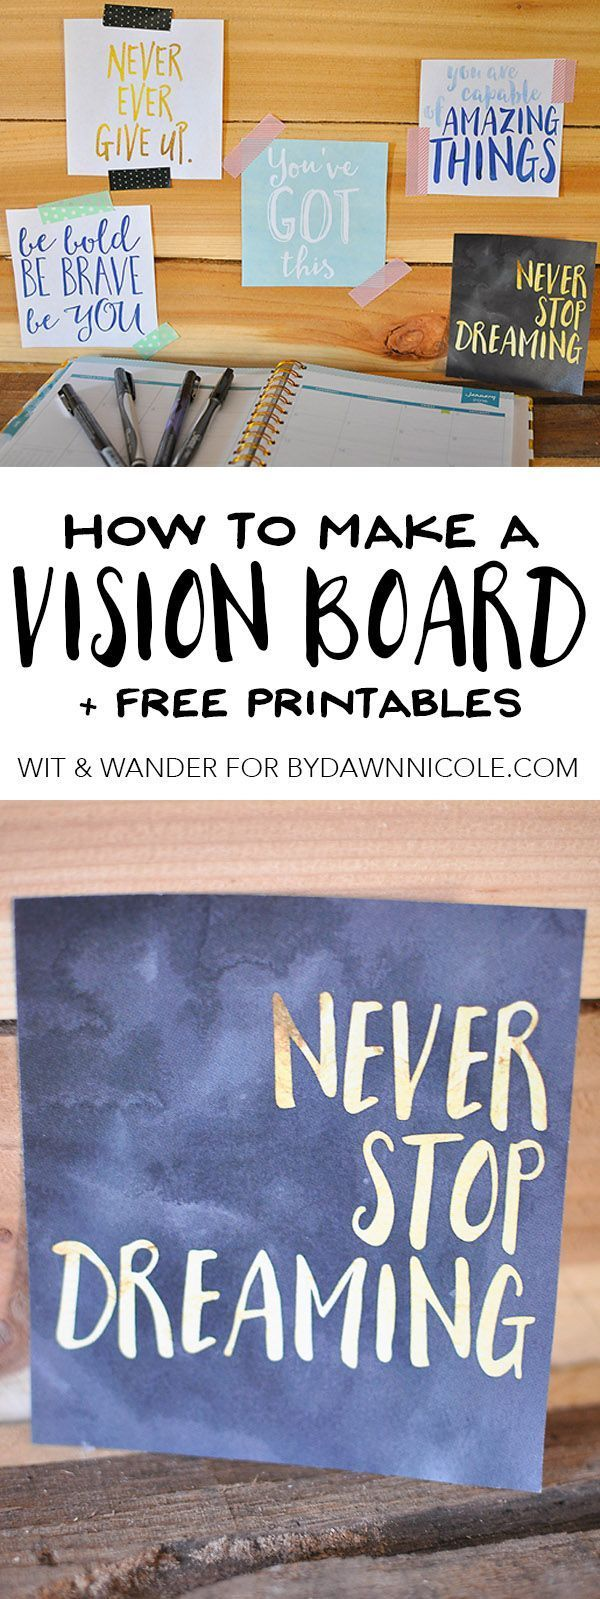 How to Make a Vision Board + Free Printables